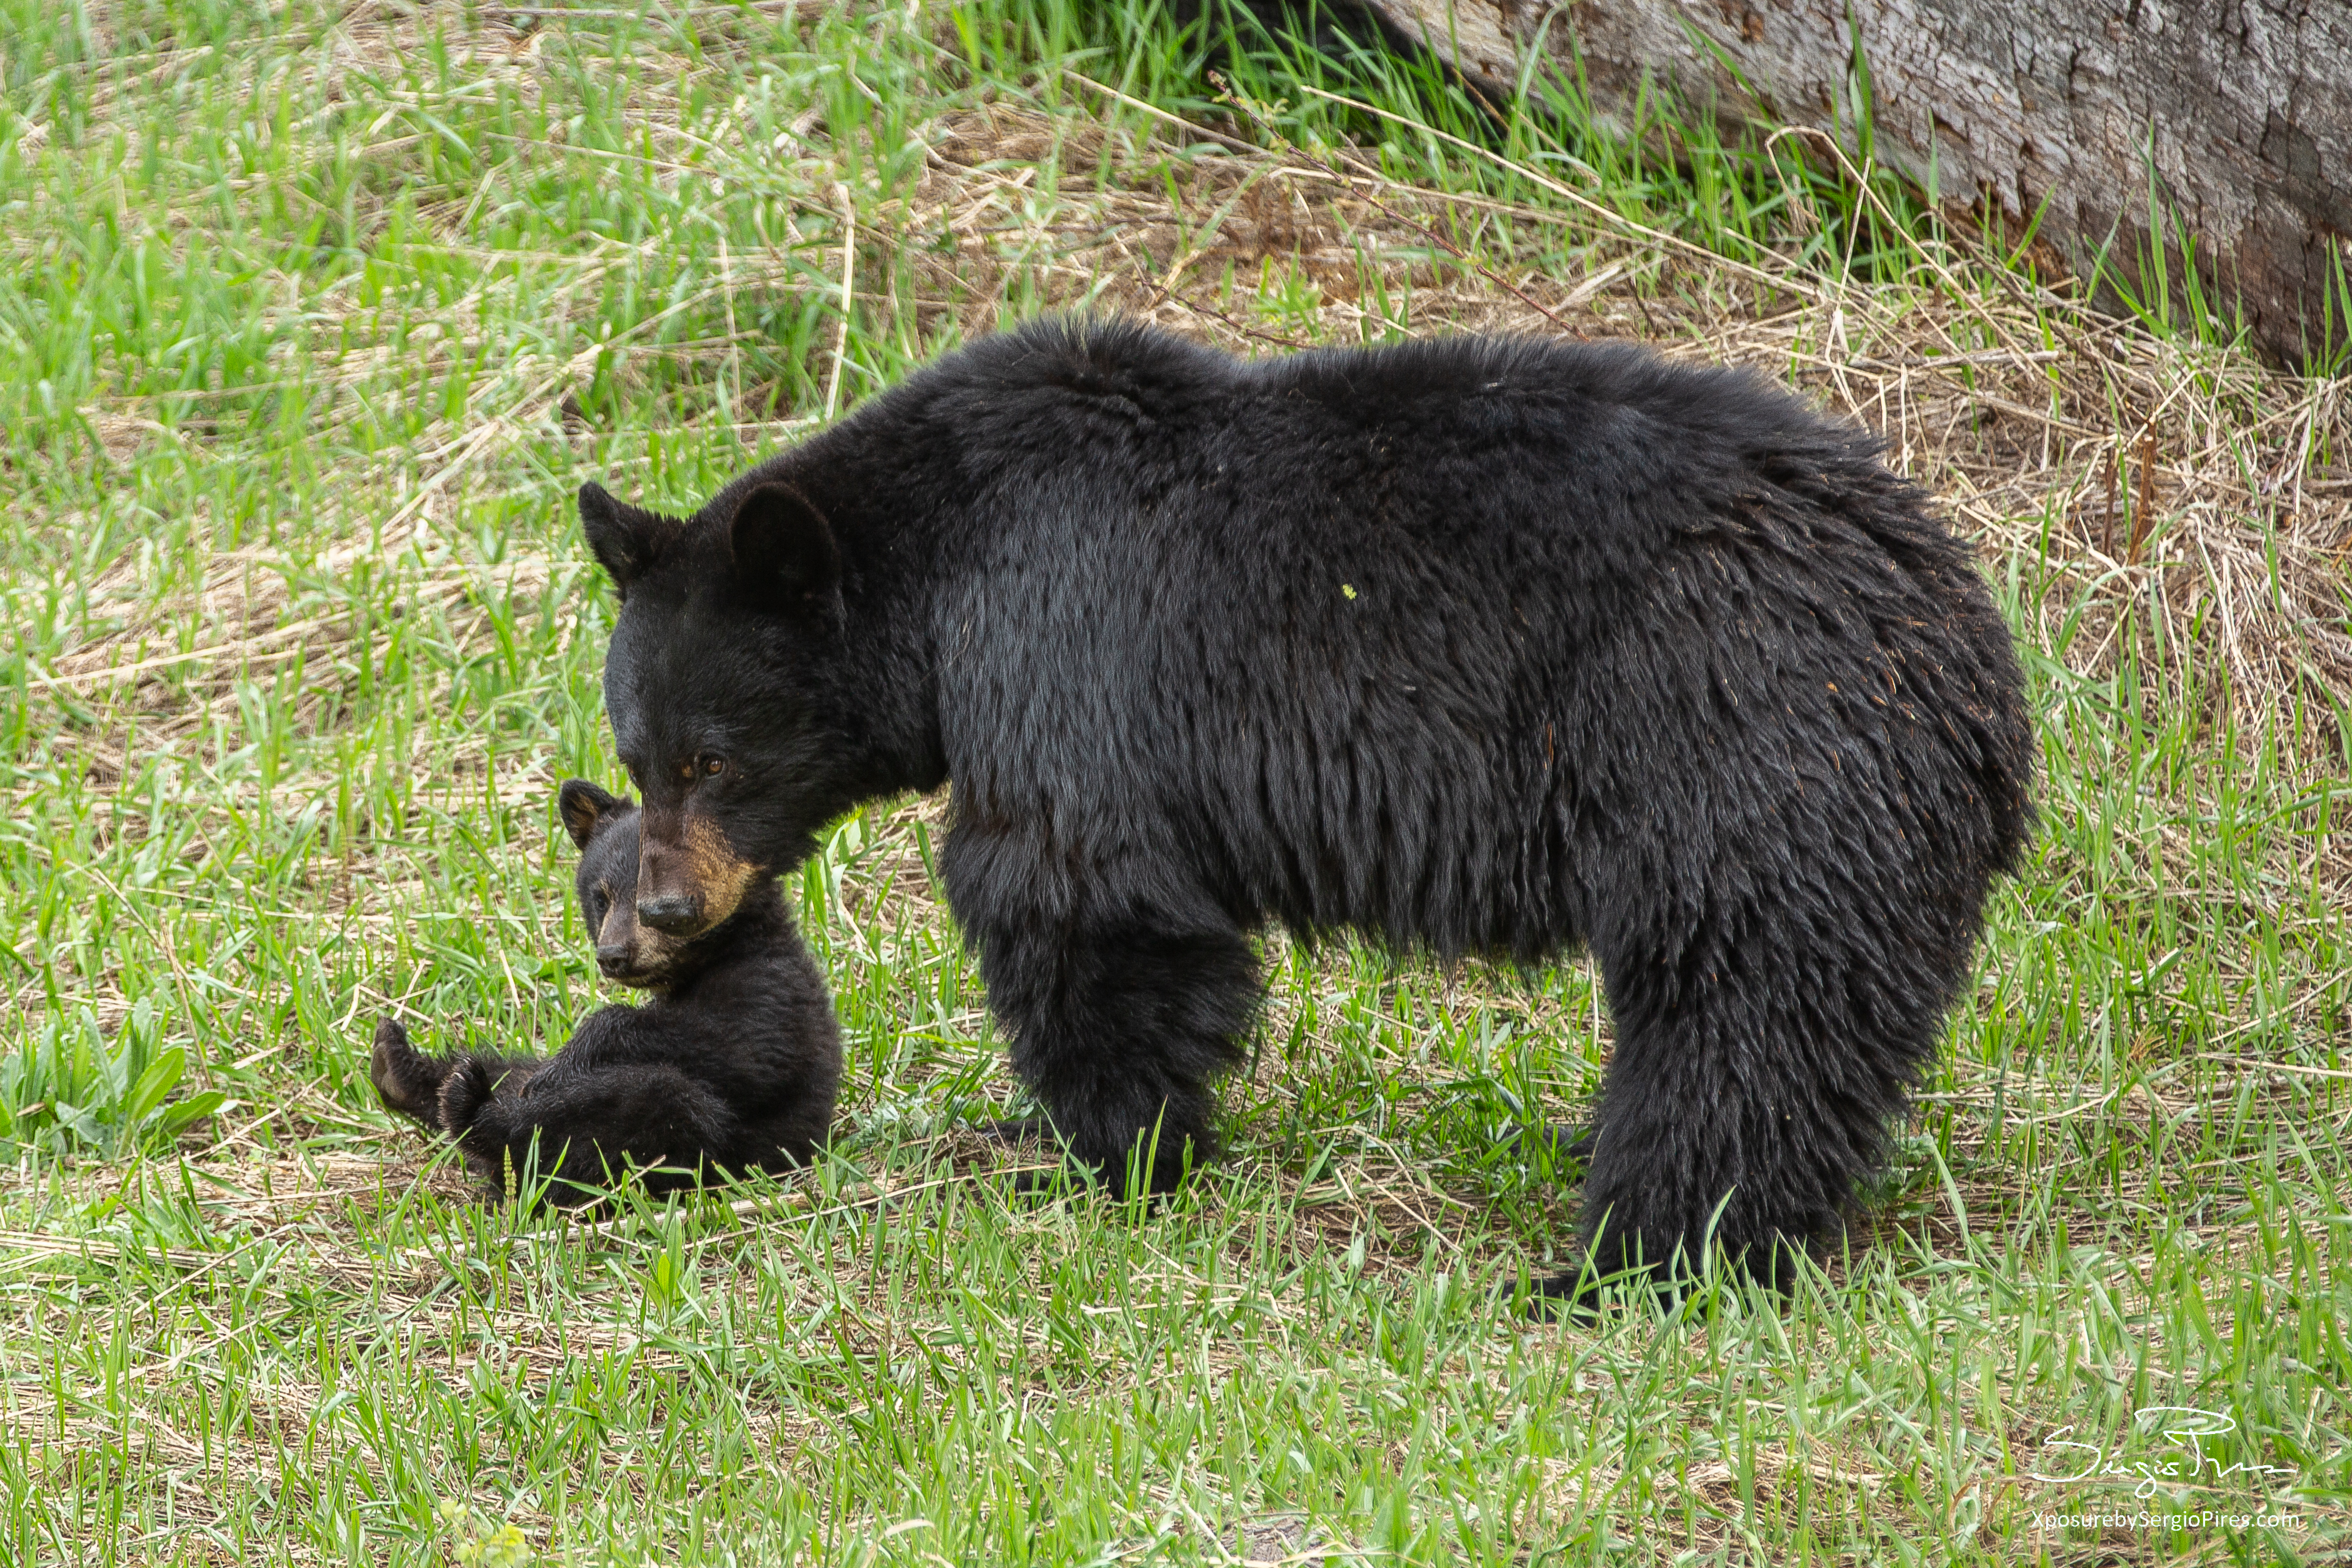 Mama bear and cub playing